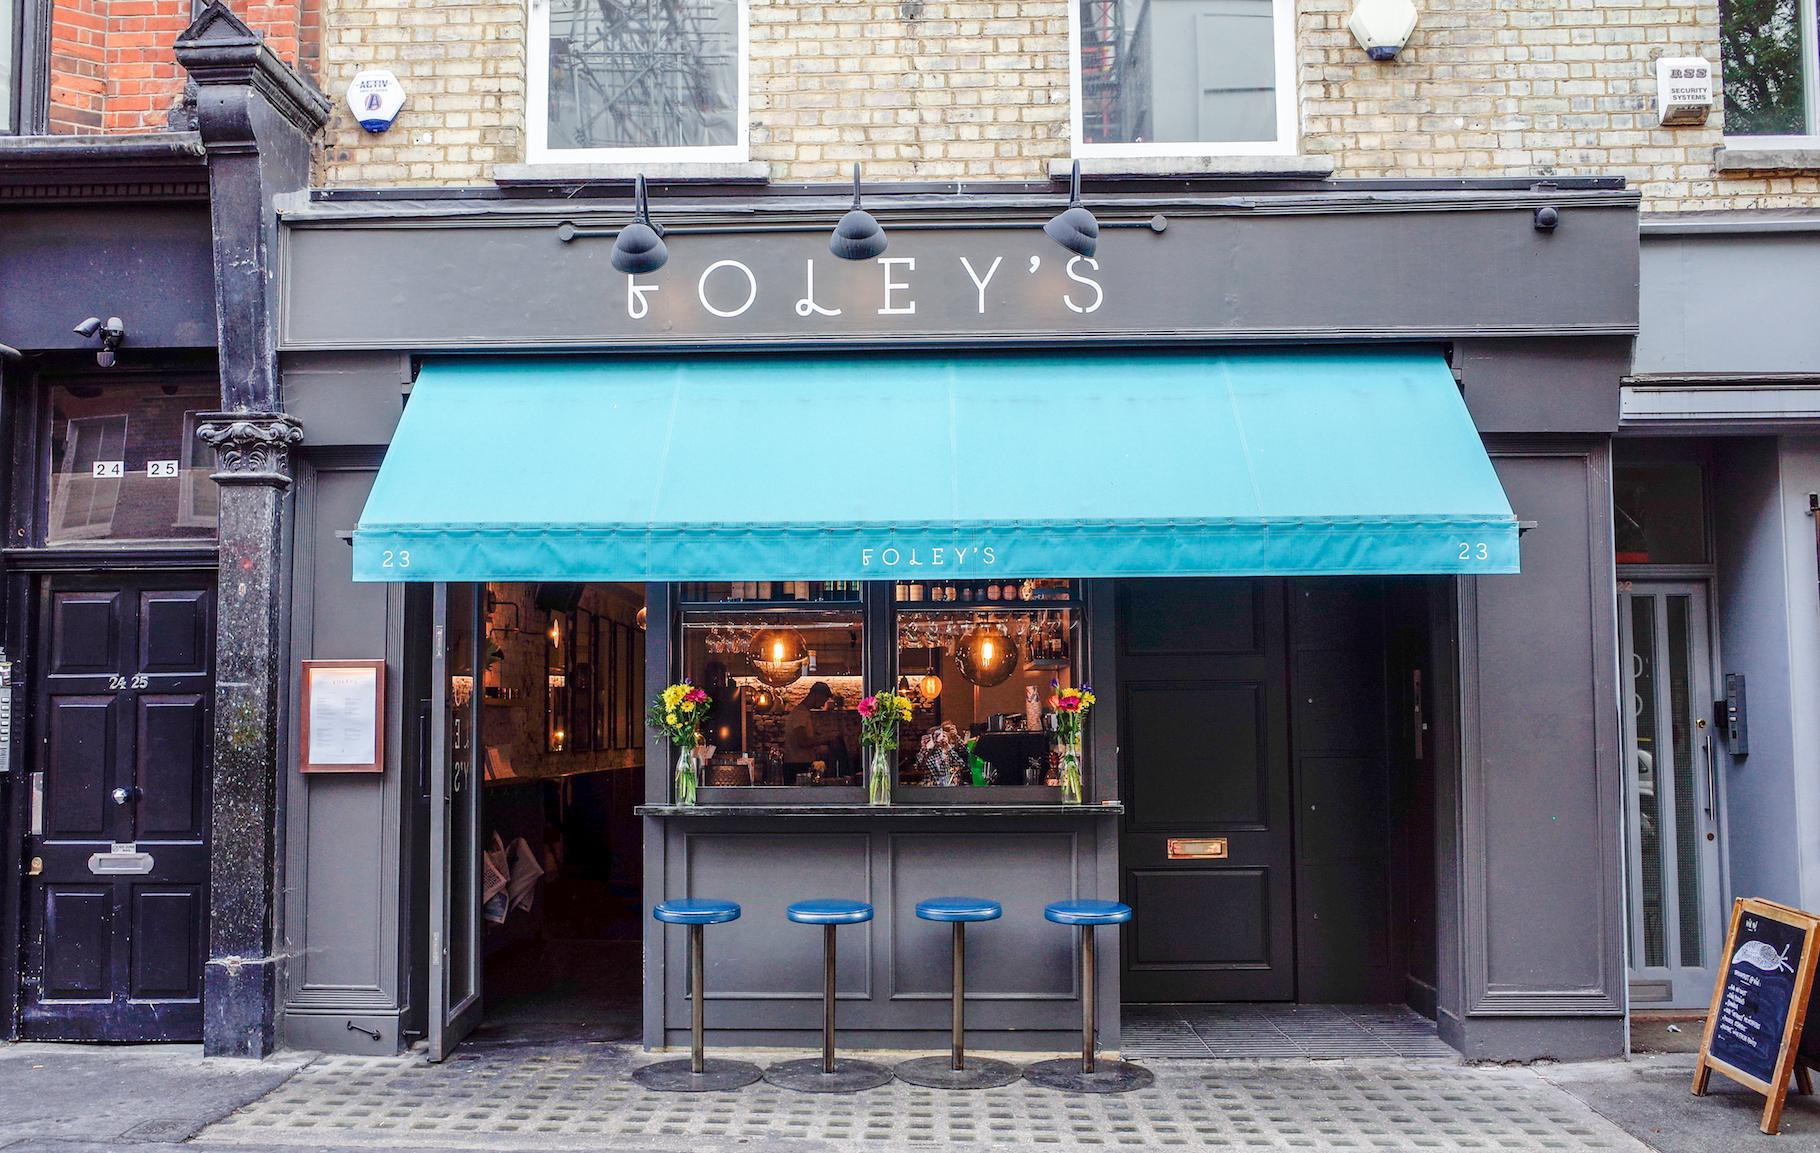 Straight Forward Design - We love Fitzrovia Foleys